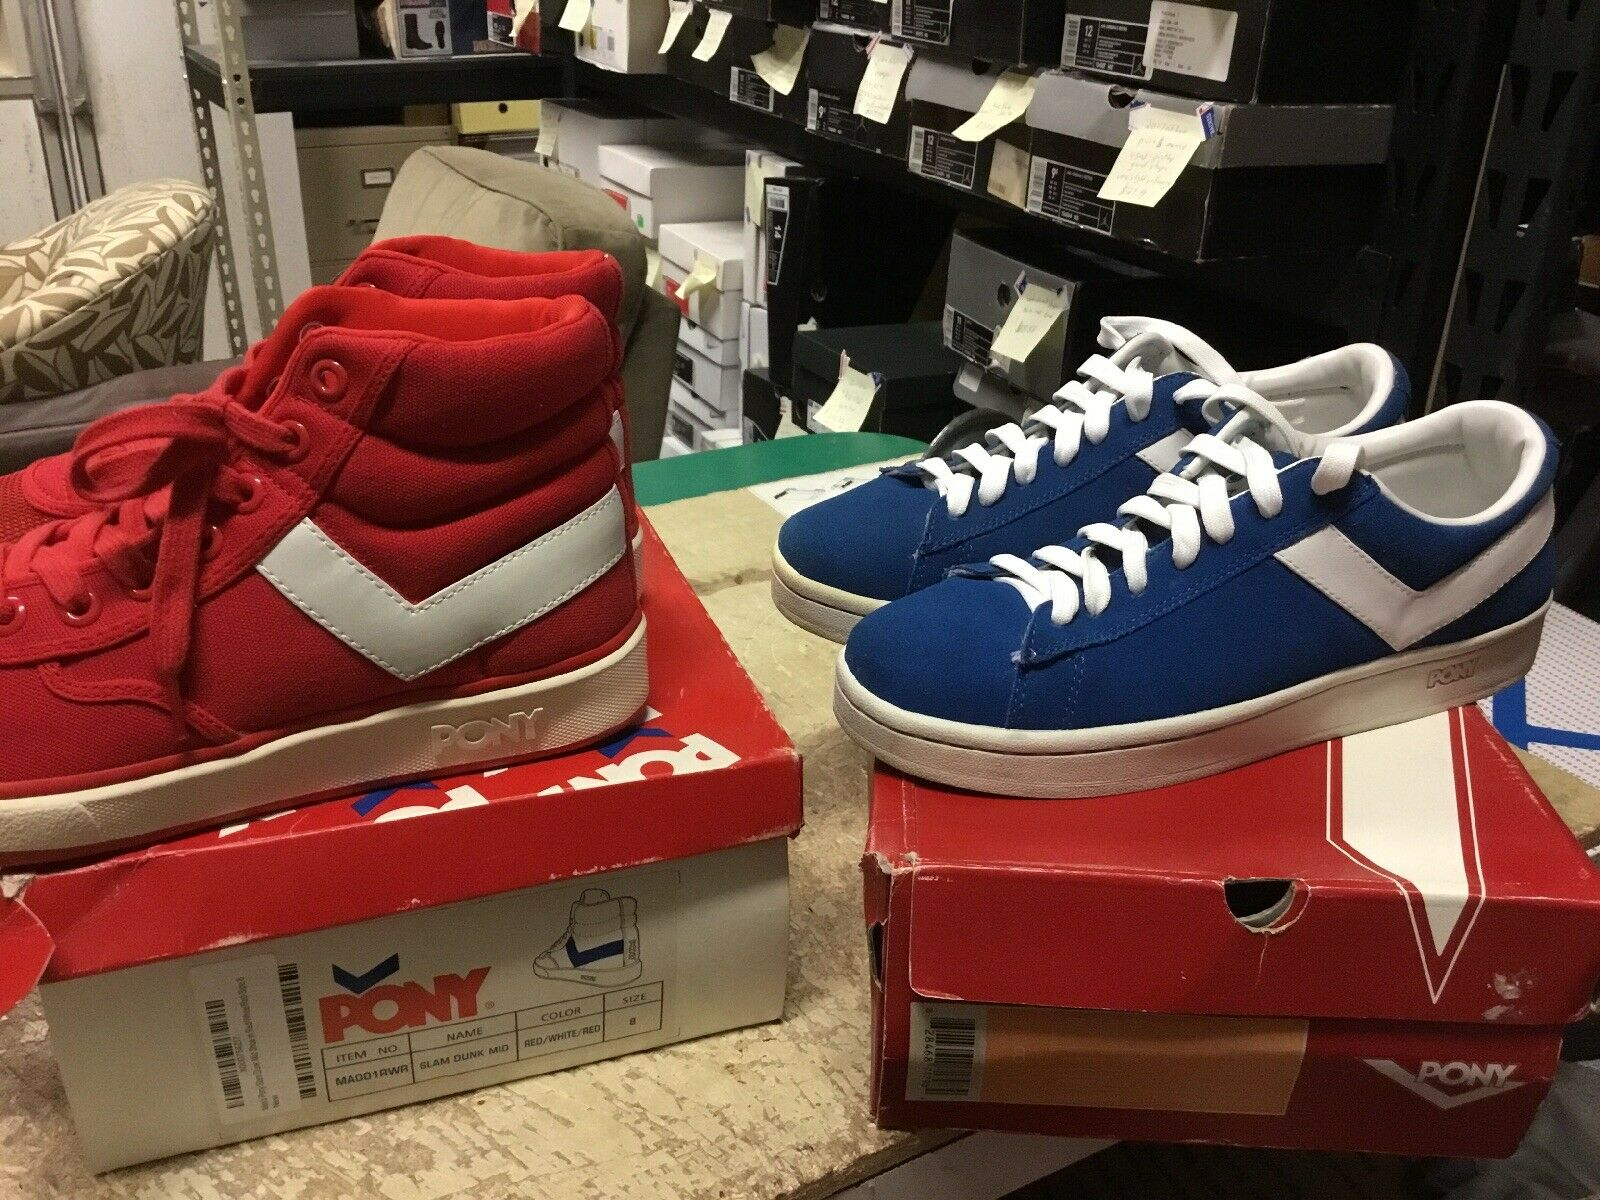 2 Pair Lot Of Pony shoes SLam Dunk MId & Top Star LO Mens US Sz 8 Free Ship Used